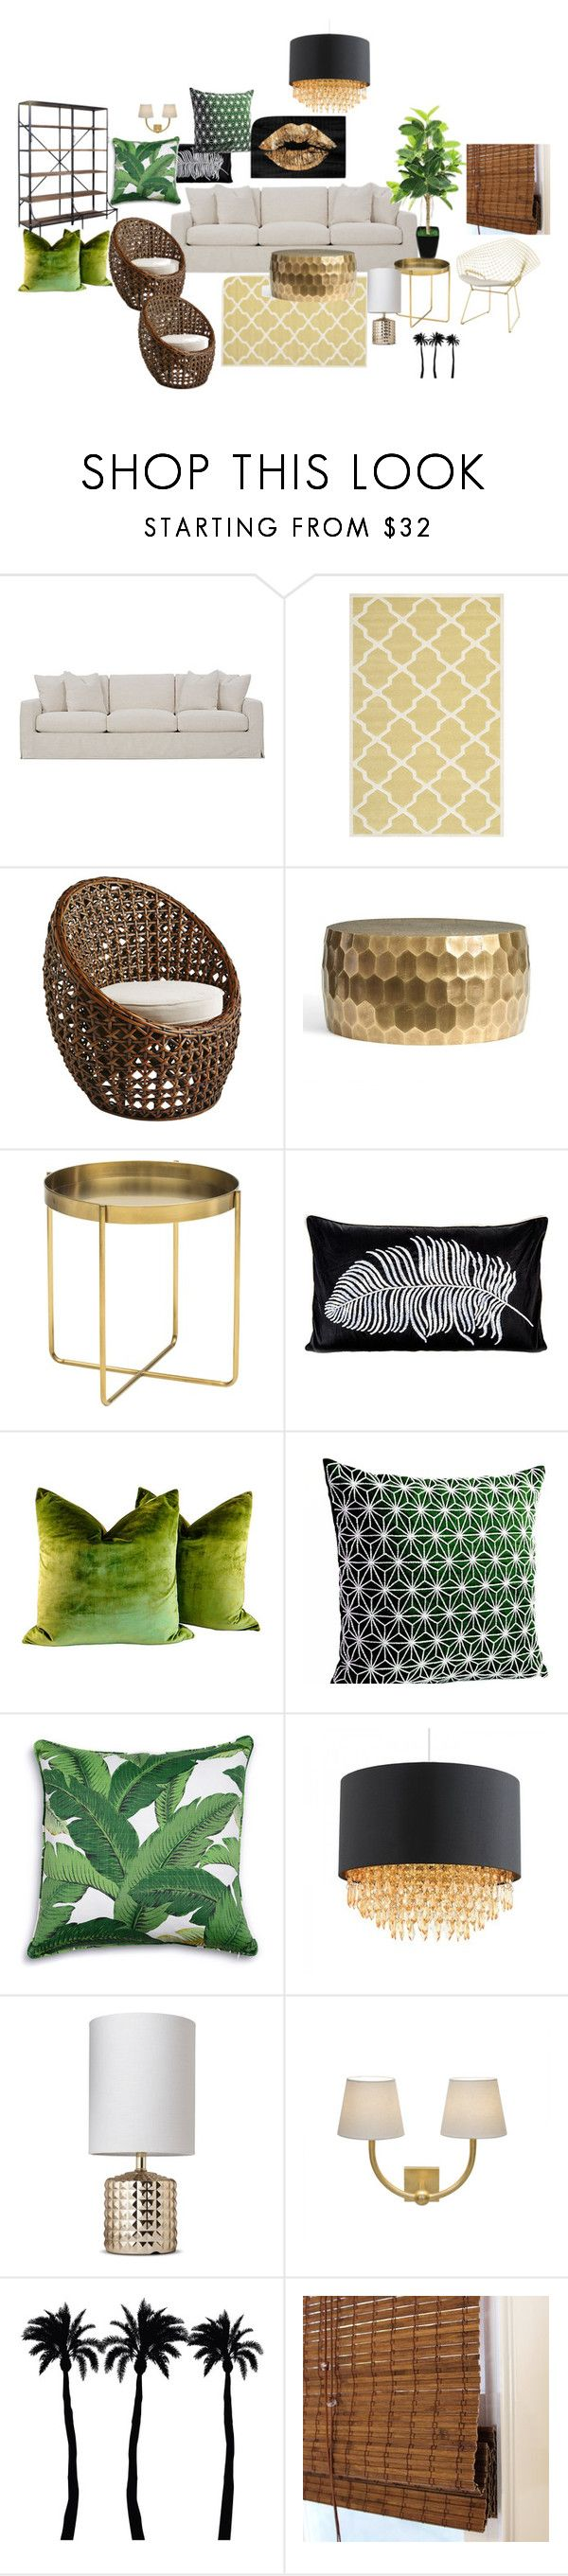 """tropical glam"" by kumi76 on Polyvore featuring interior, interiors, interior design, home, home decor, interior decorating, Robin Bruce, Safavieh, Pottery Barn and Nuevo"